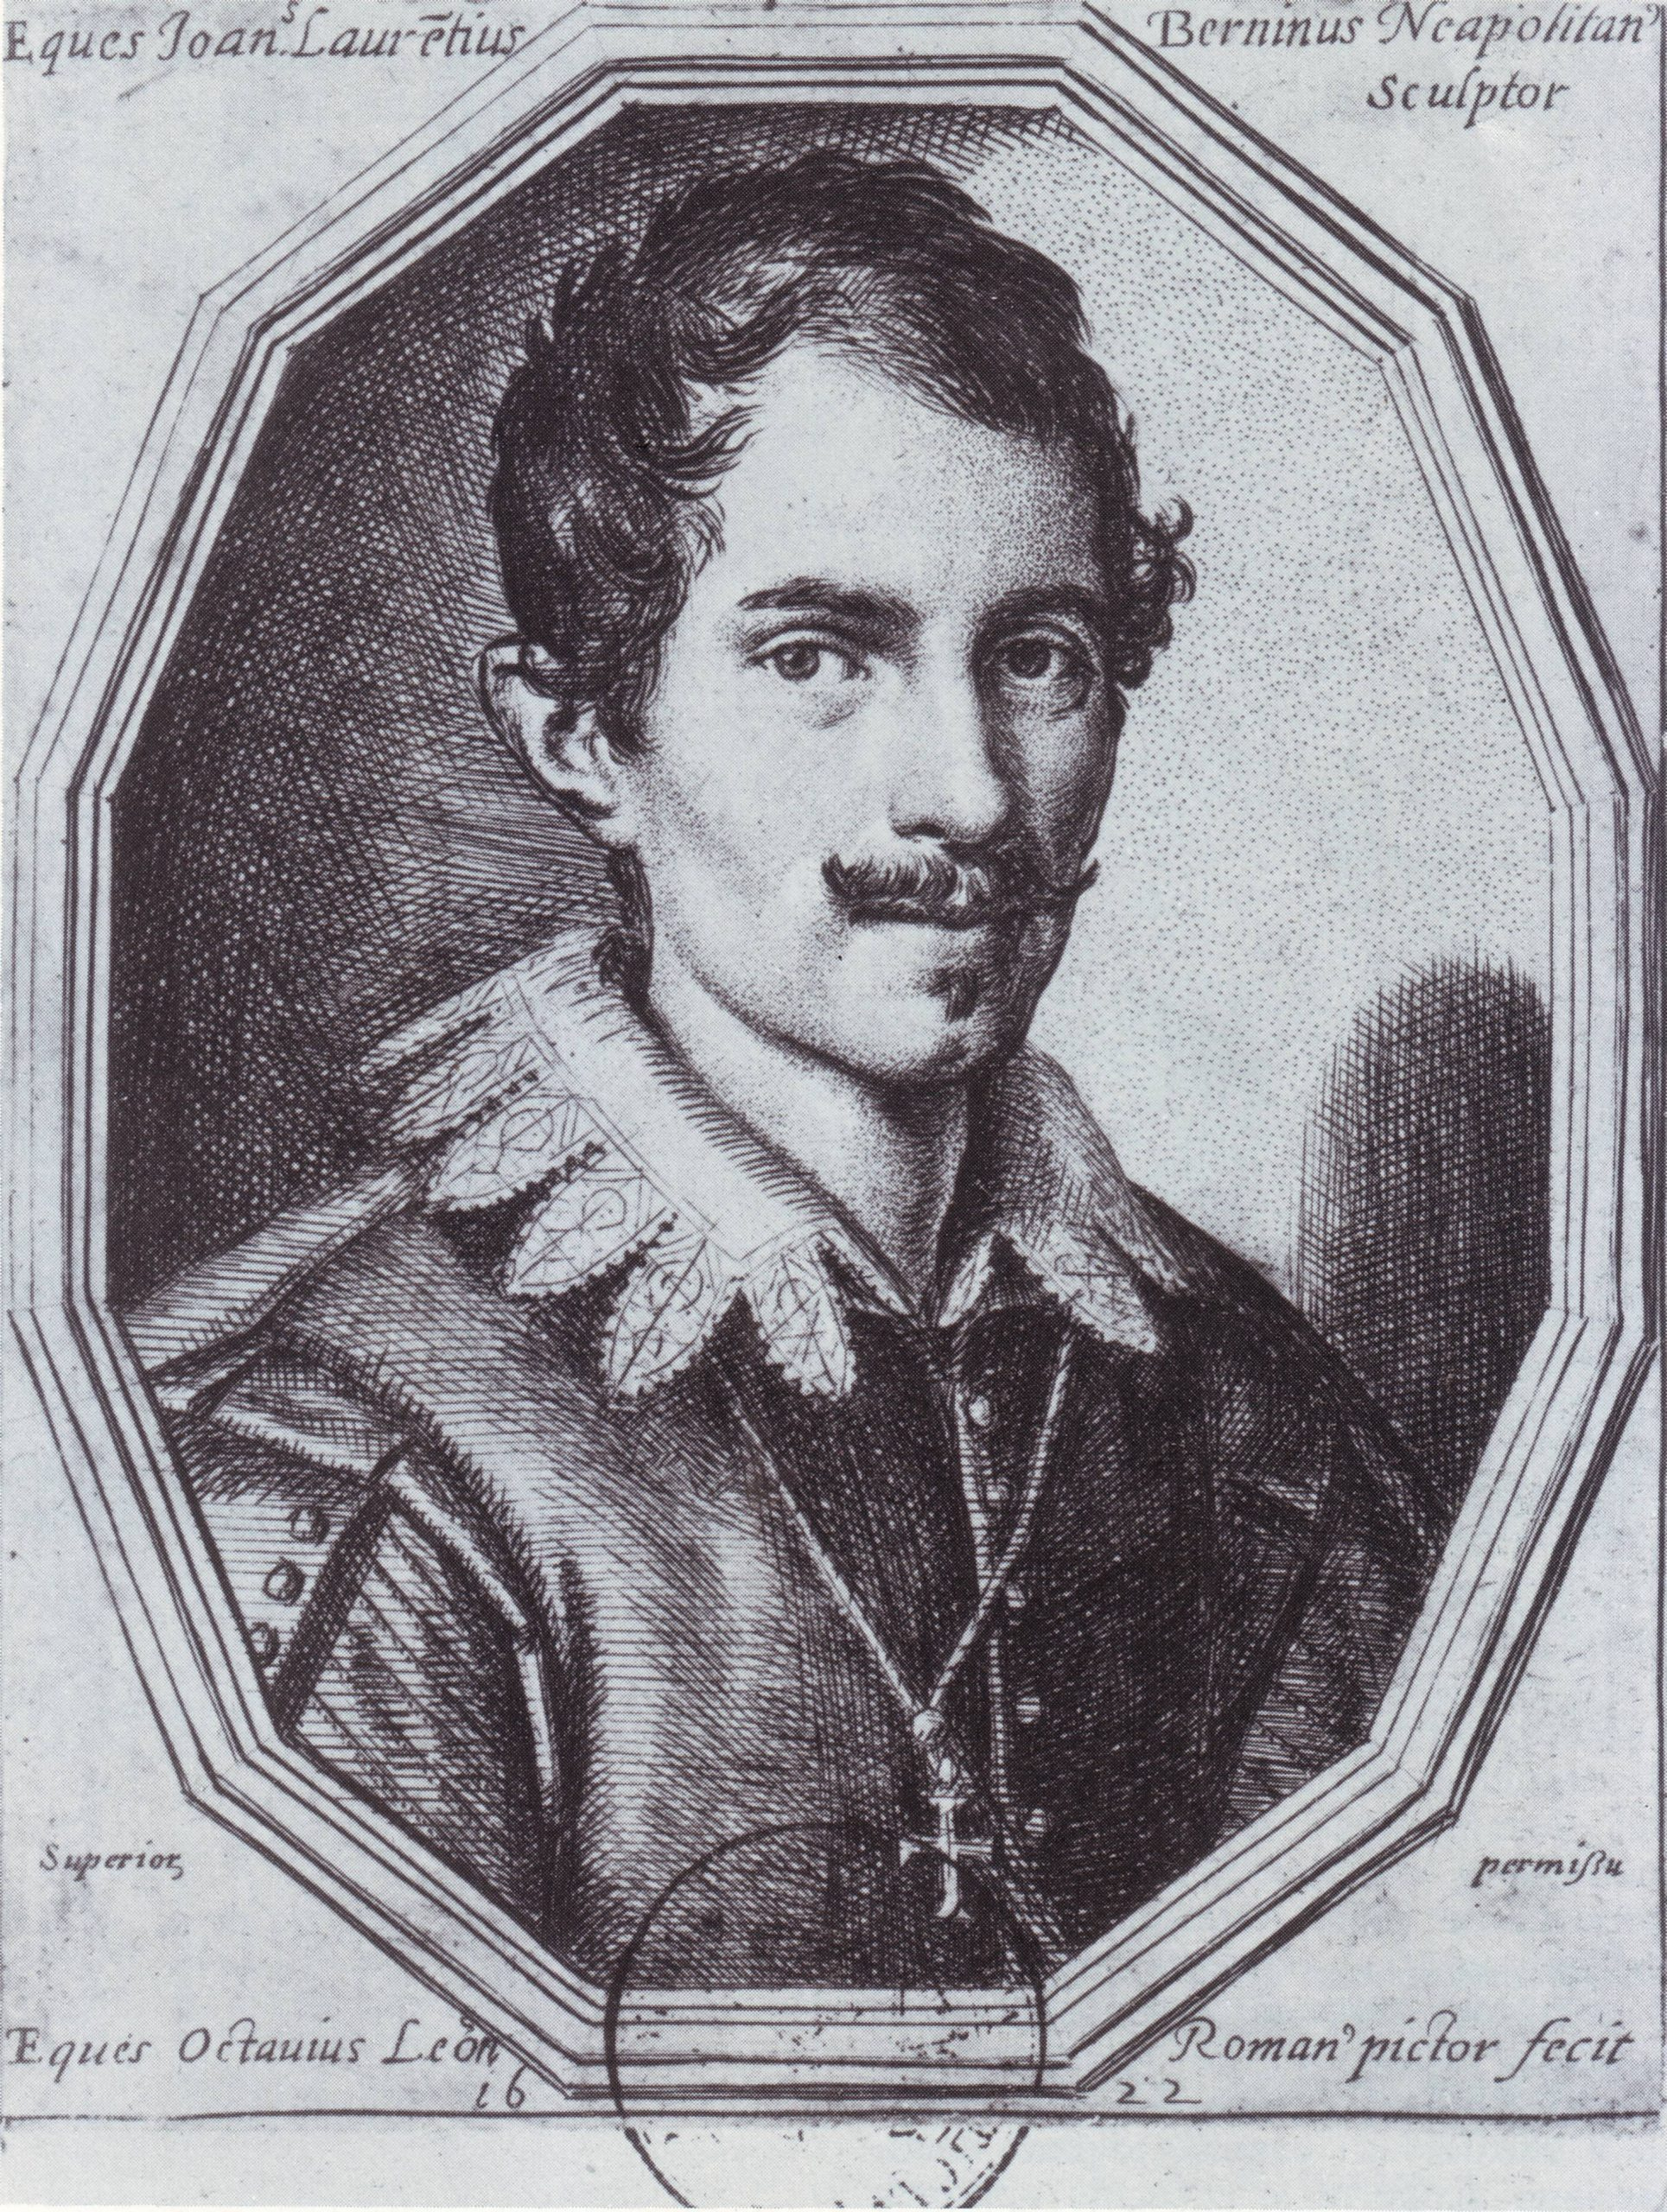 A young man with short hair wears a jacket with elaborate collar and cross necklace.